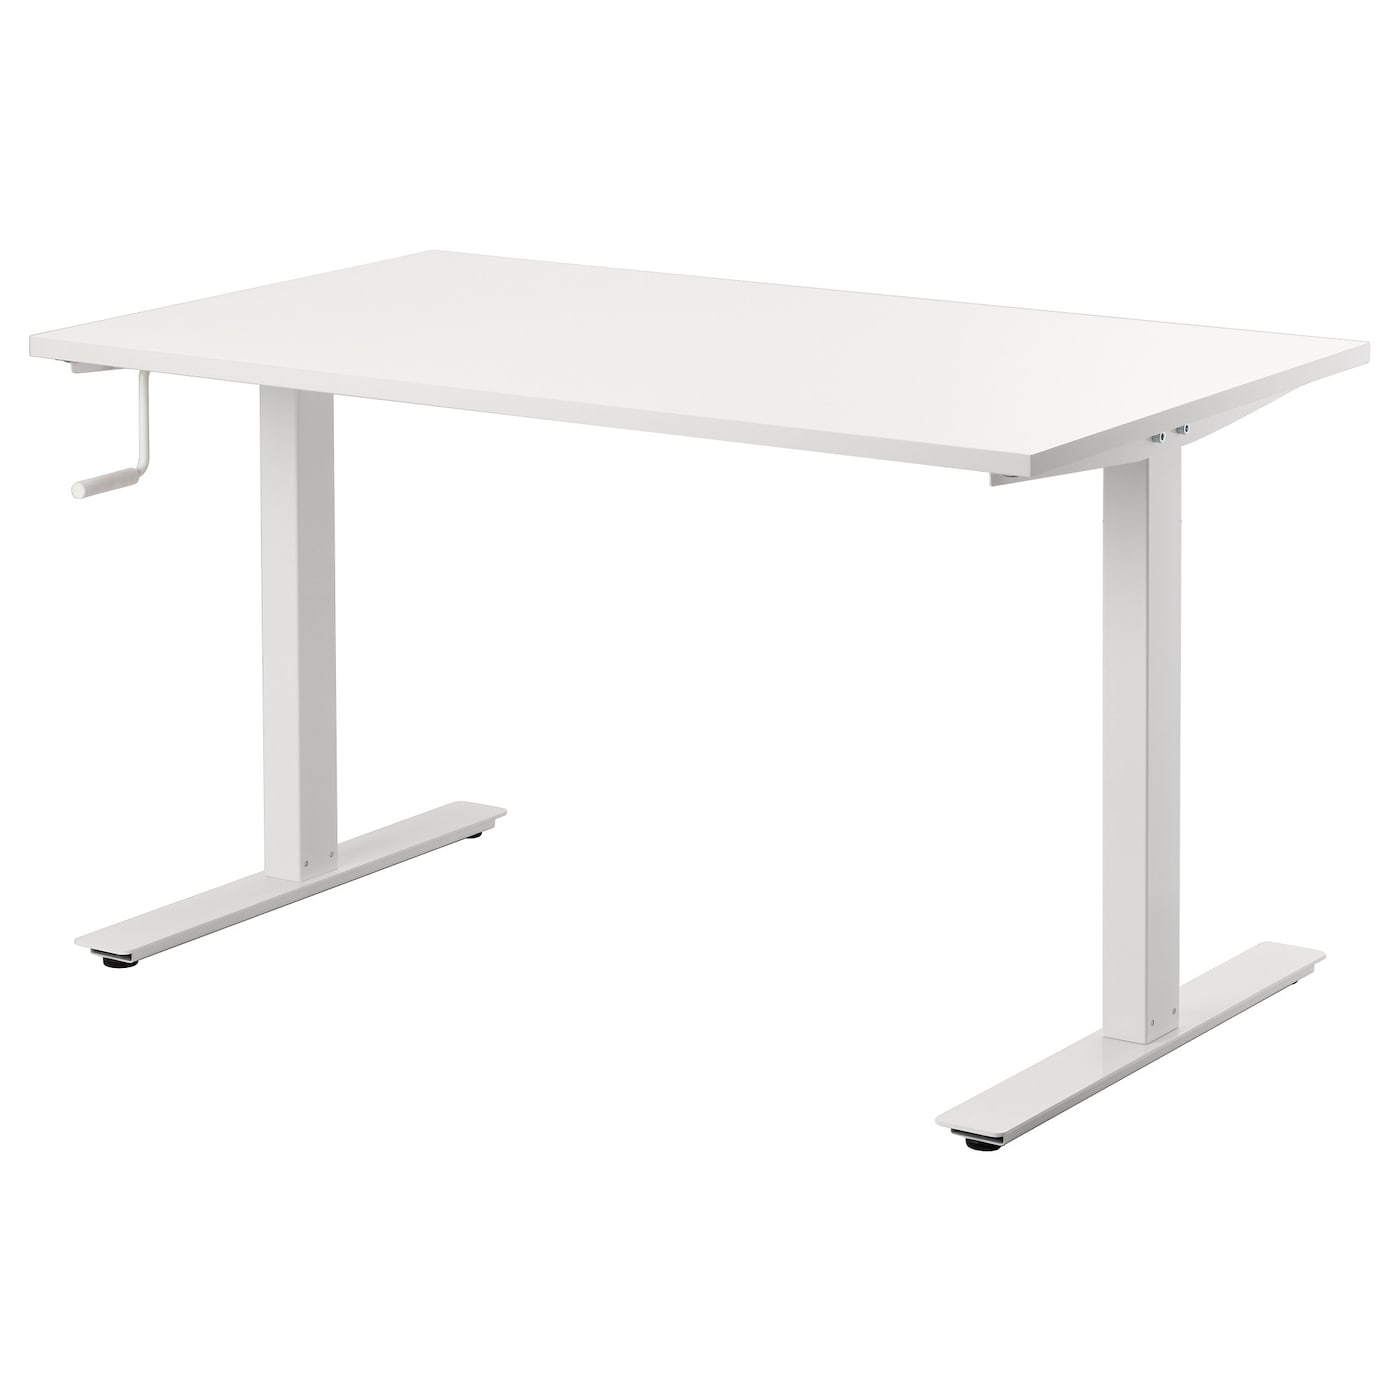 Ikea Skarsta Desk Sit Stand Adjule Feet Make The Steady Also On Uneven